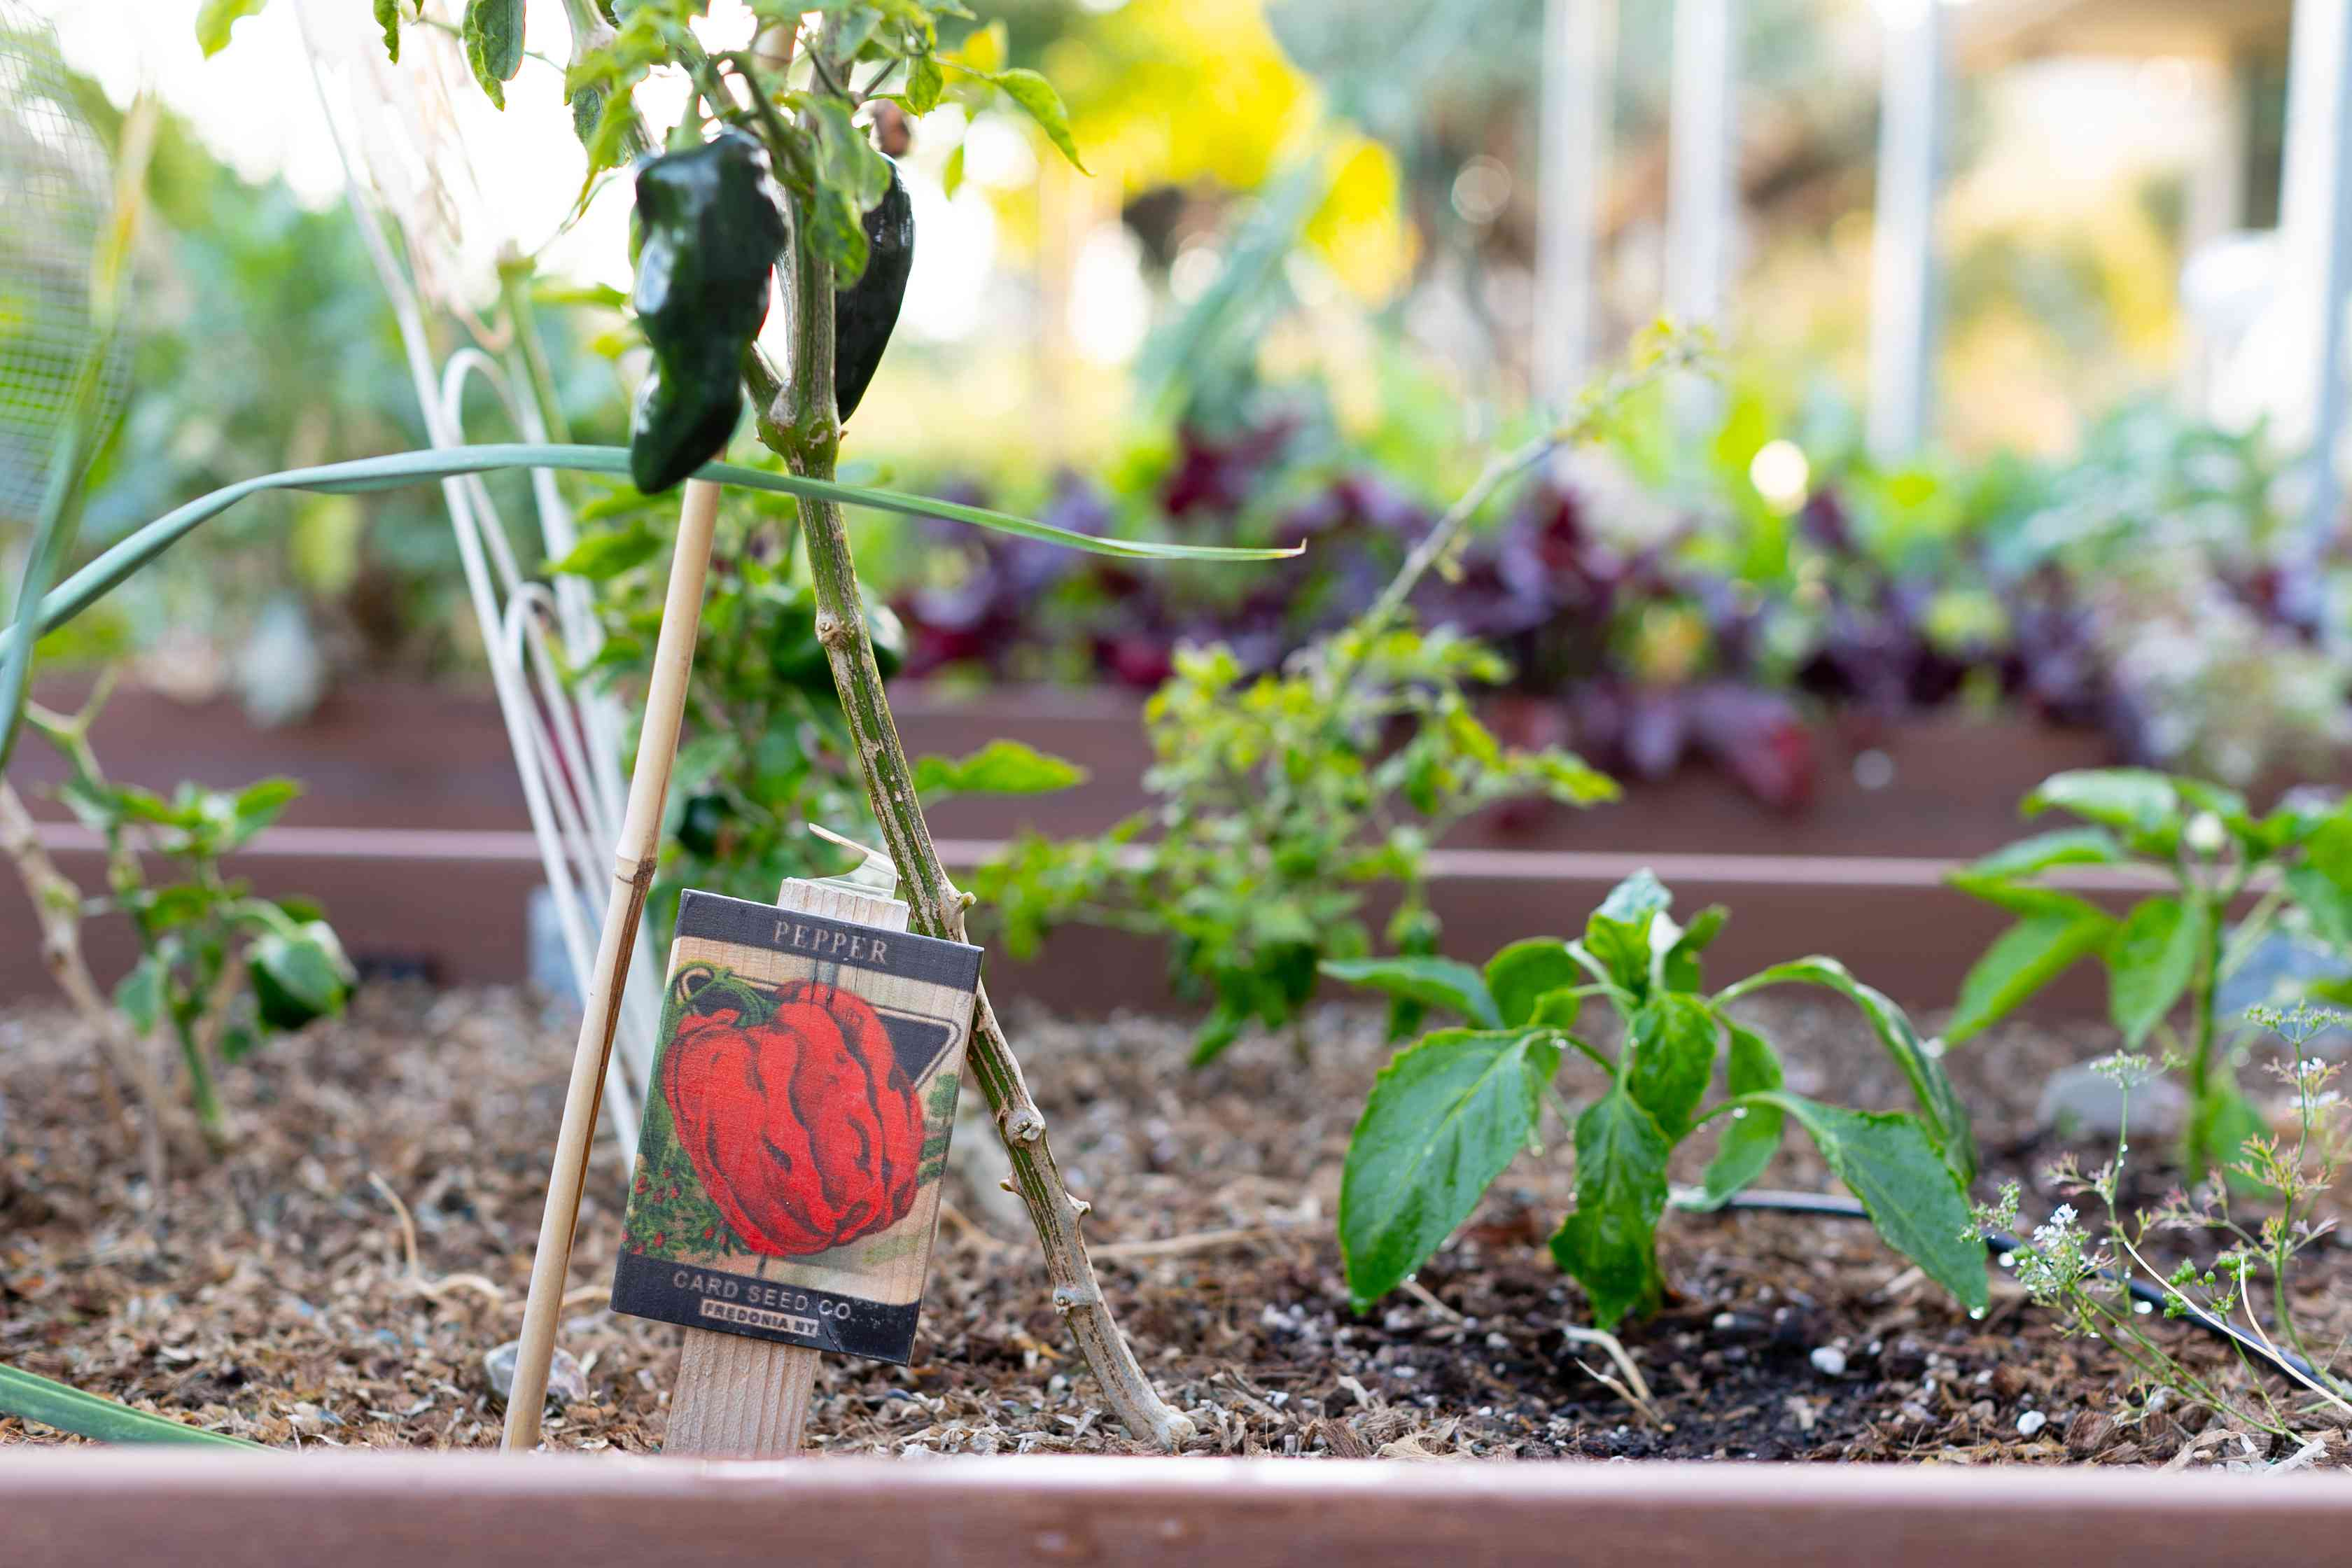 Vegetable garden plants spaced out in raised garden ben with peppers hanging off plant